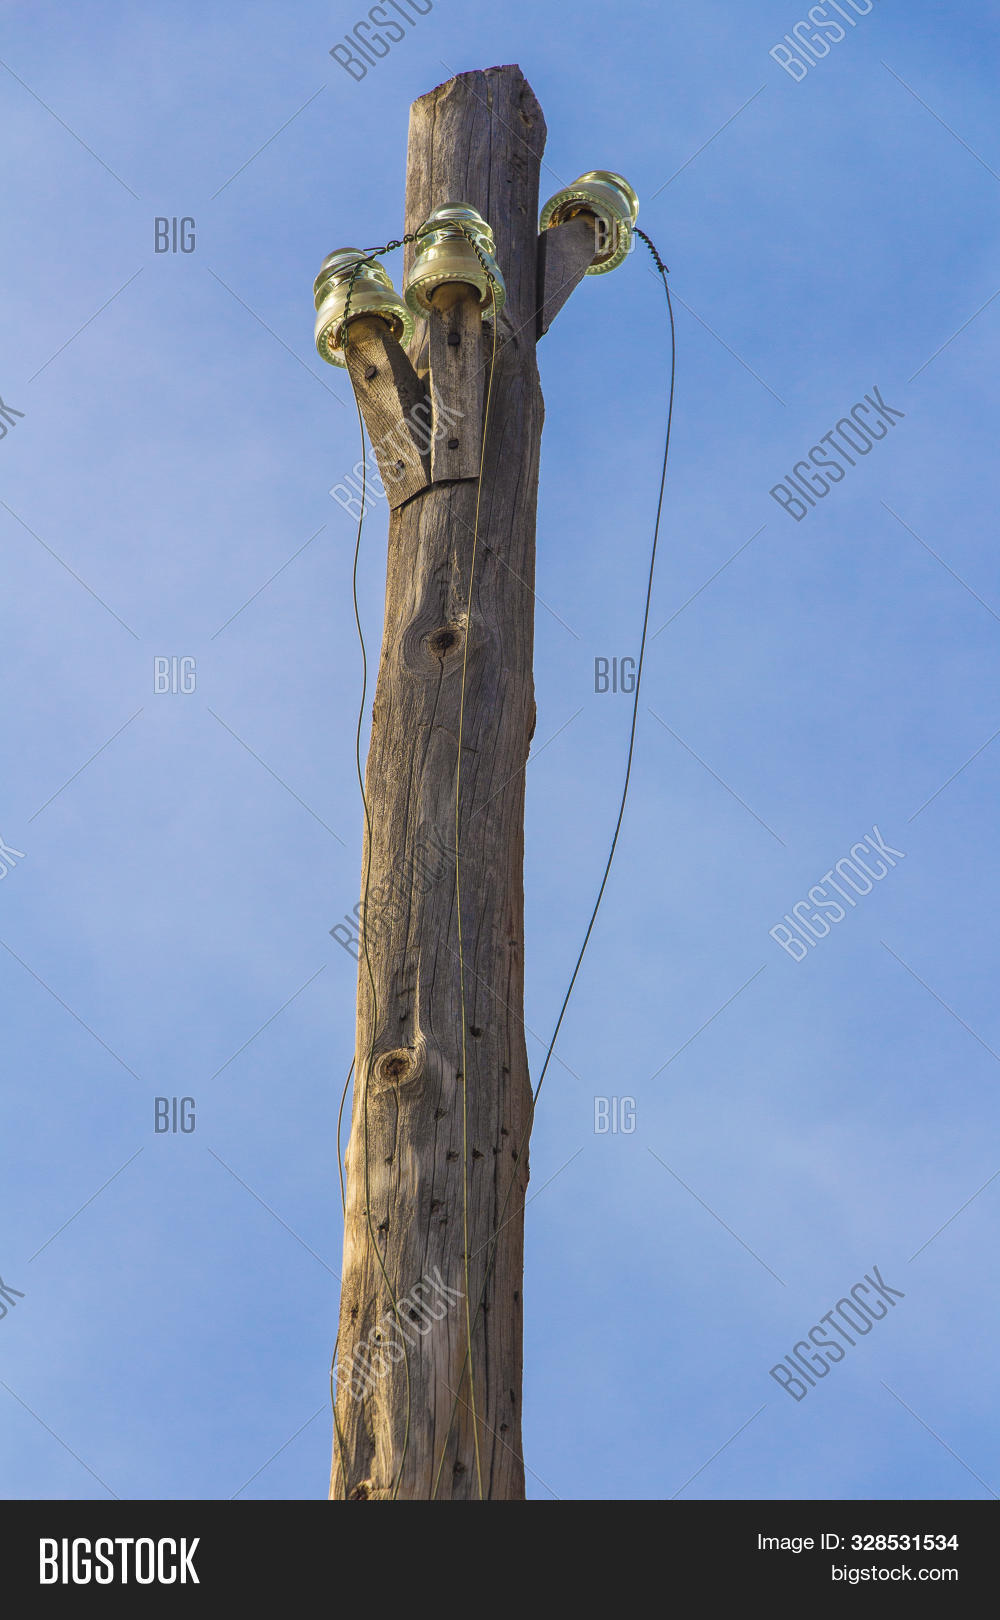 abandoned,aged,ancient,blue,cable,column,communication,current,danger,electric,electrical,electricity,energy,equipment,high,industrial,industry,infrastructure,insulator,line,metal,nature,network,old,outdoor,pole,post,power,pylon,rural,rustic,sky,steel,structure,supply,support,technology,telegraph,telephone,transmission,tree,vintage,voltage,wire,wood,wooden